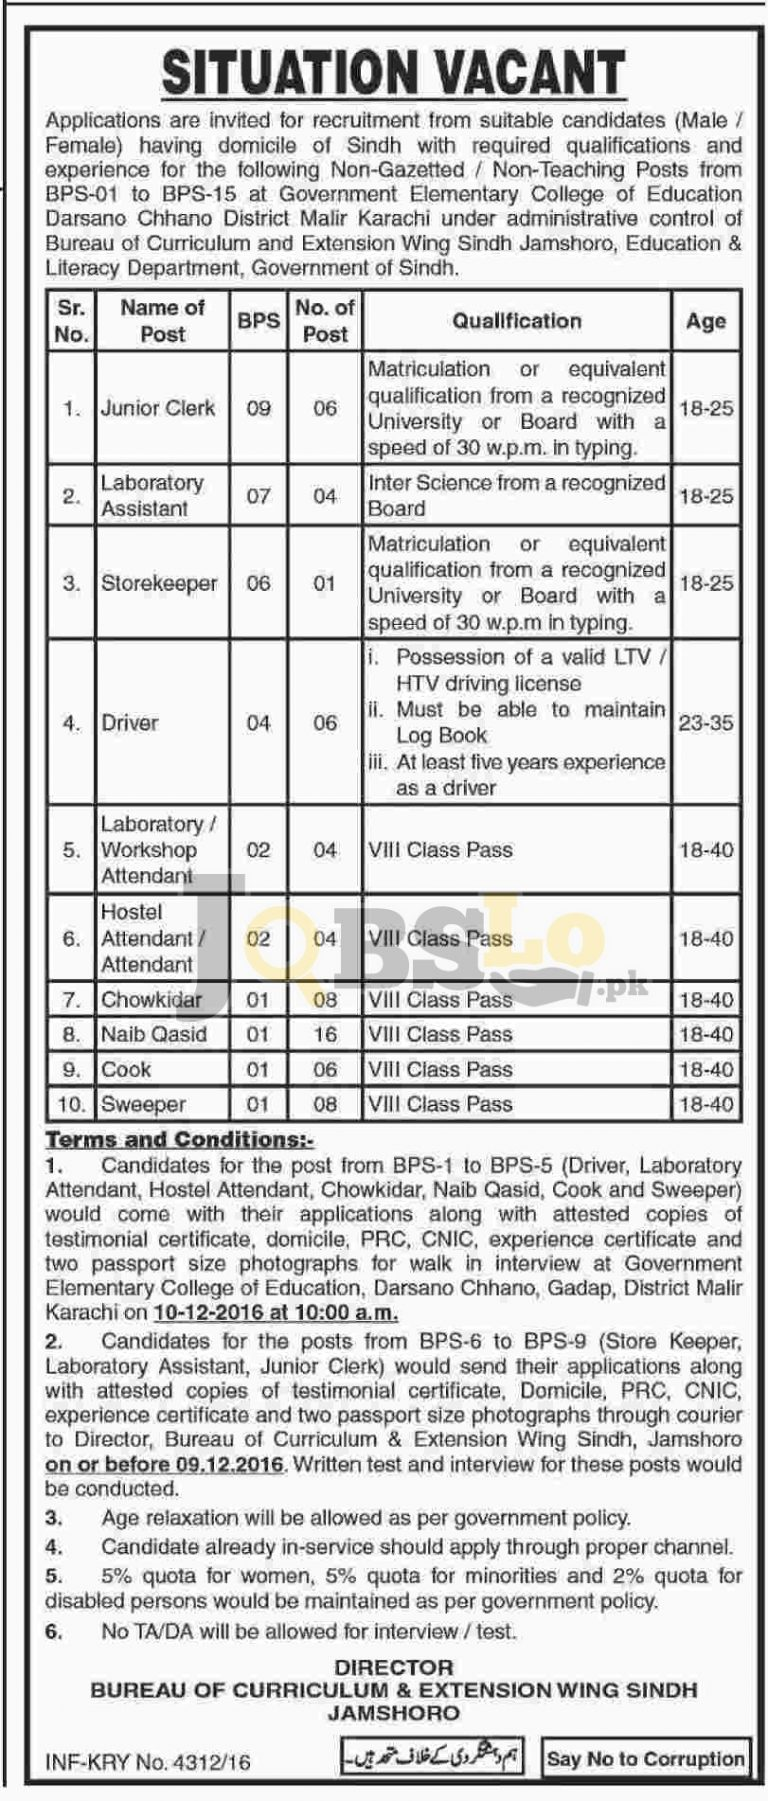 Education & Literacy Department Sindh Jobs 2016 Walk In Interview for BPS-01 to BPS-05